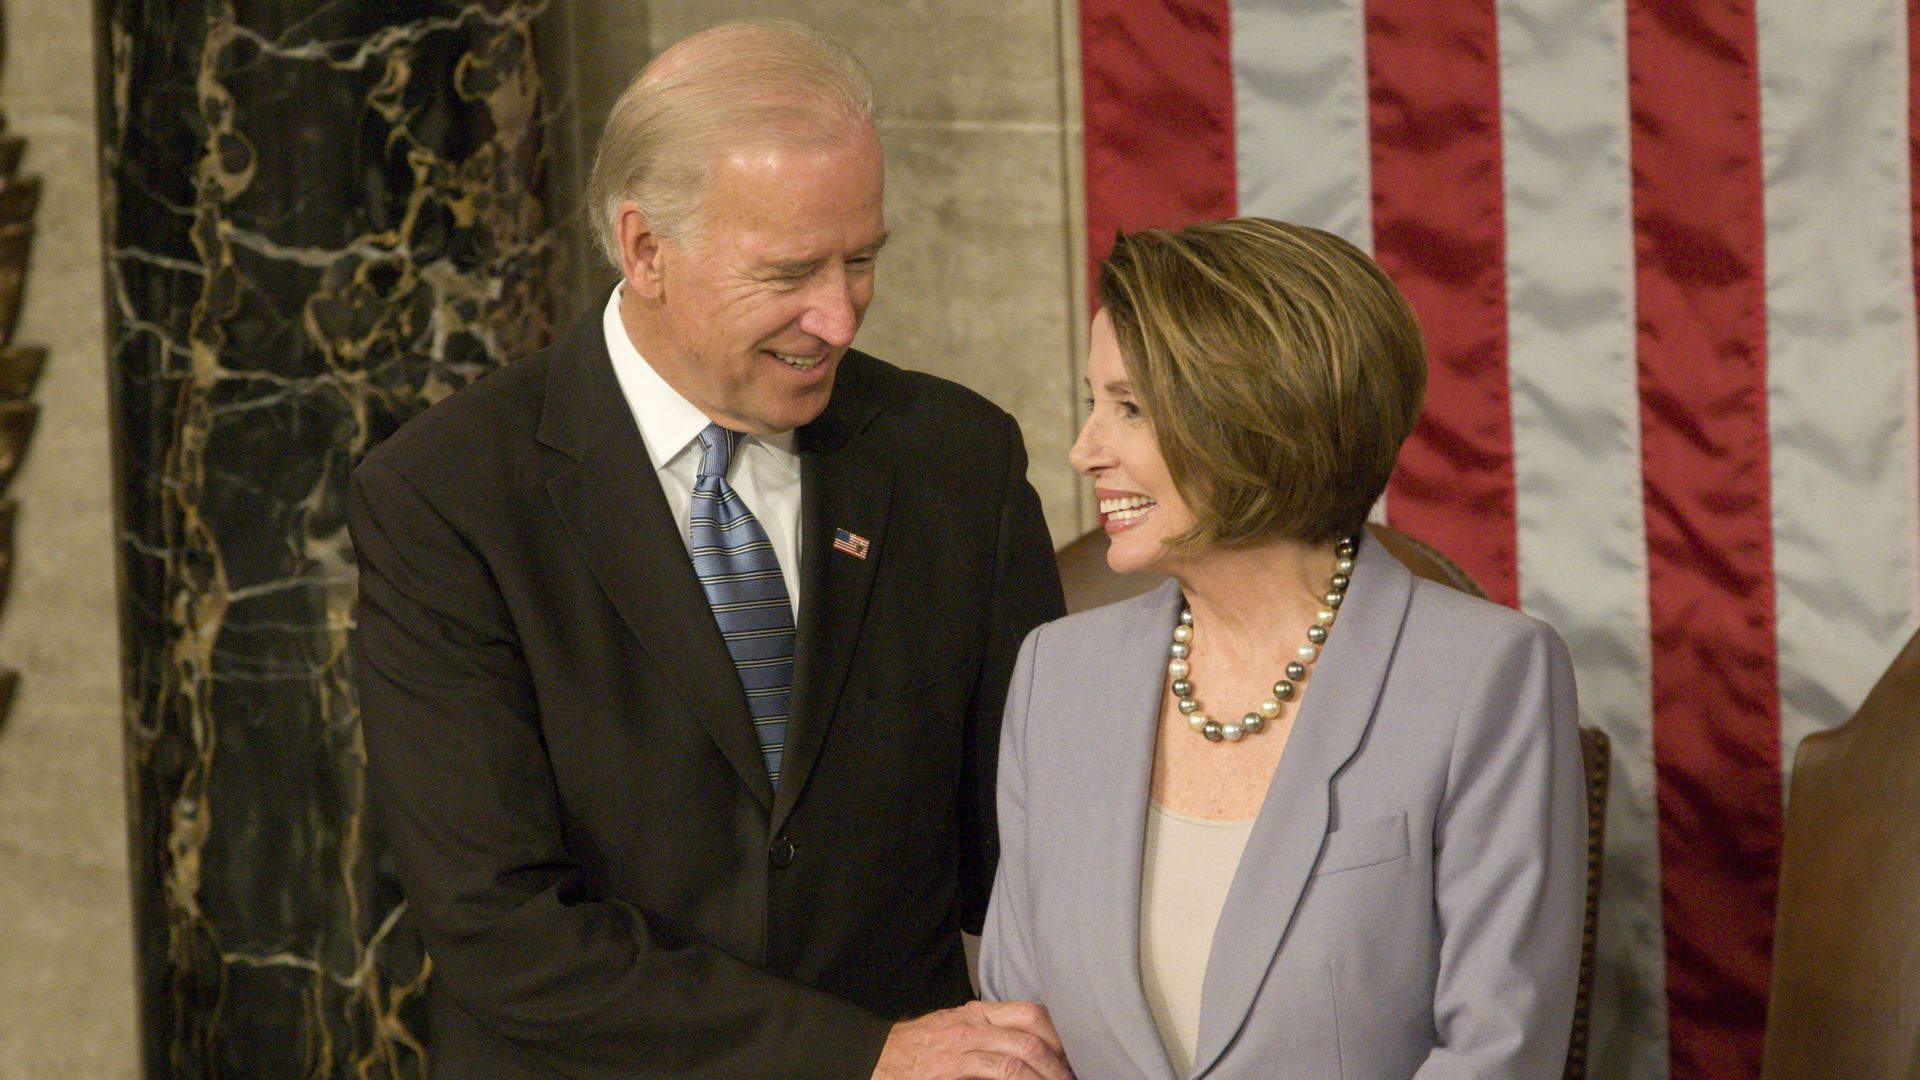 Joe Biden and Nancy Pelosi